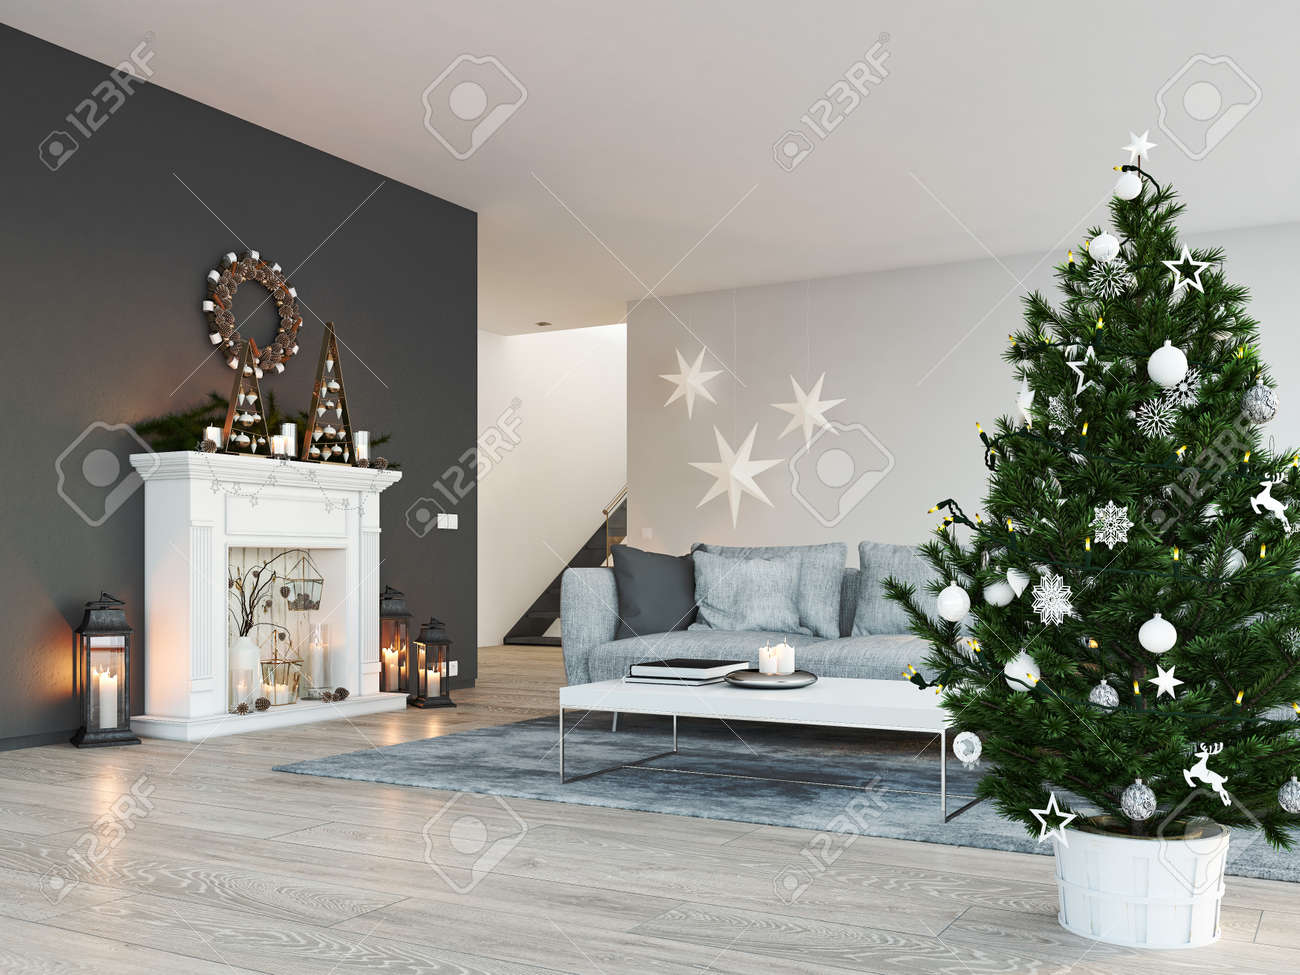 D rendering home with fireplace in modern apartment christmas